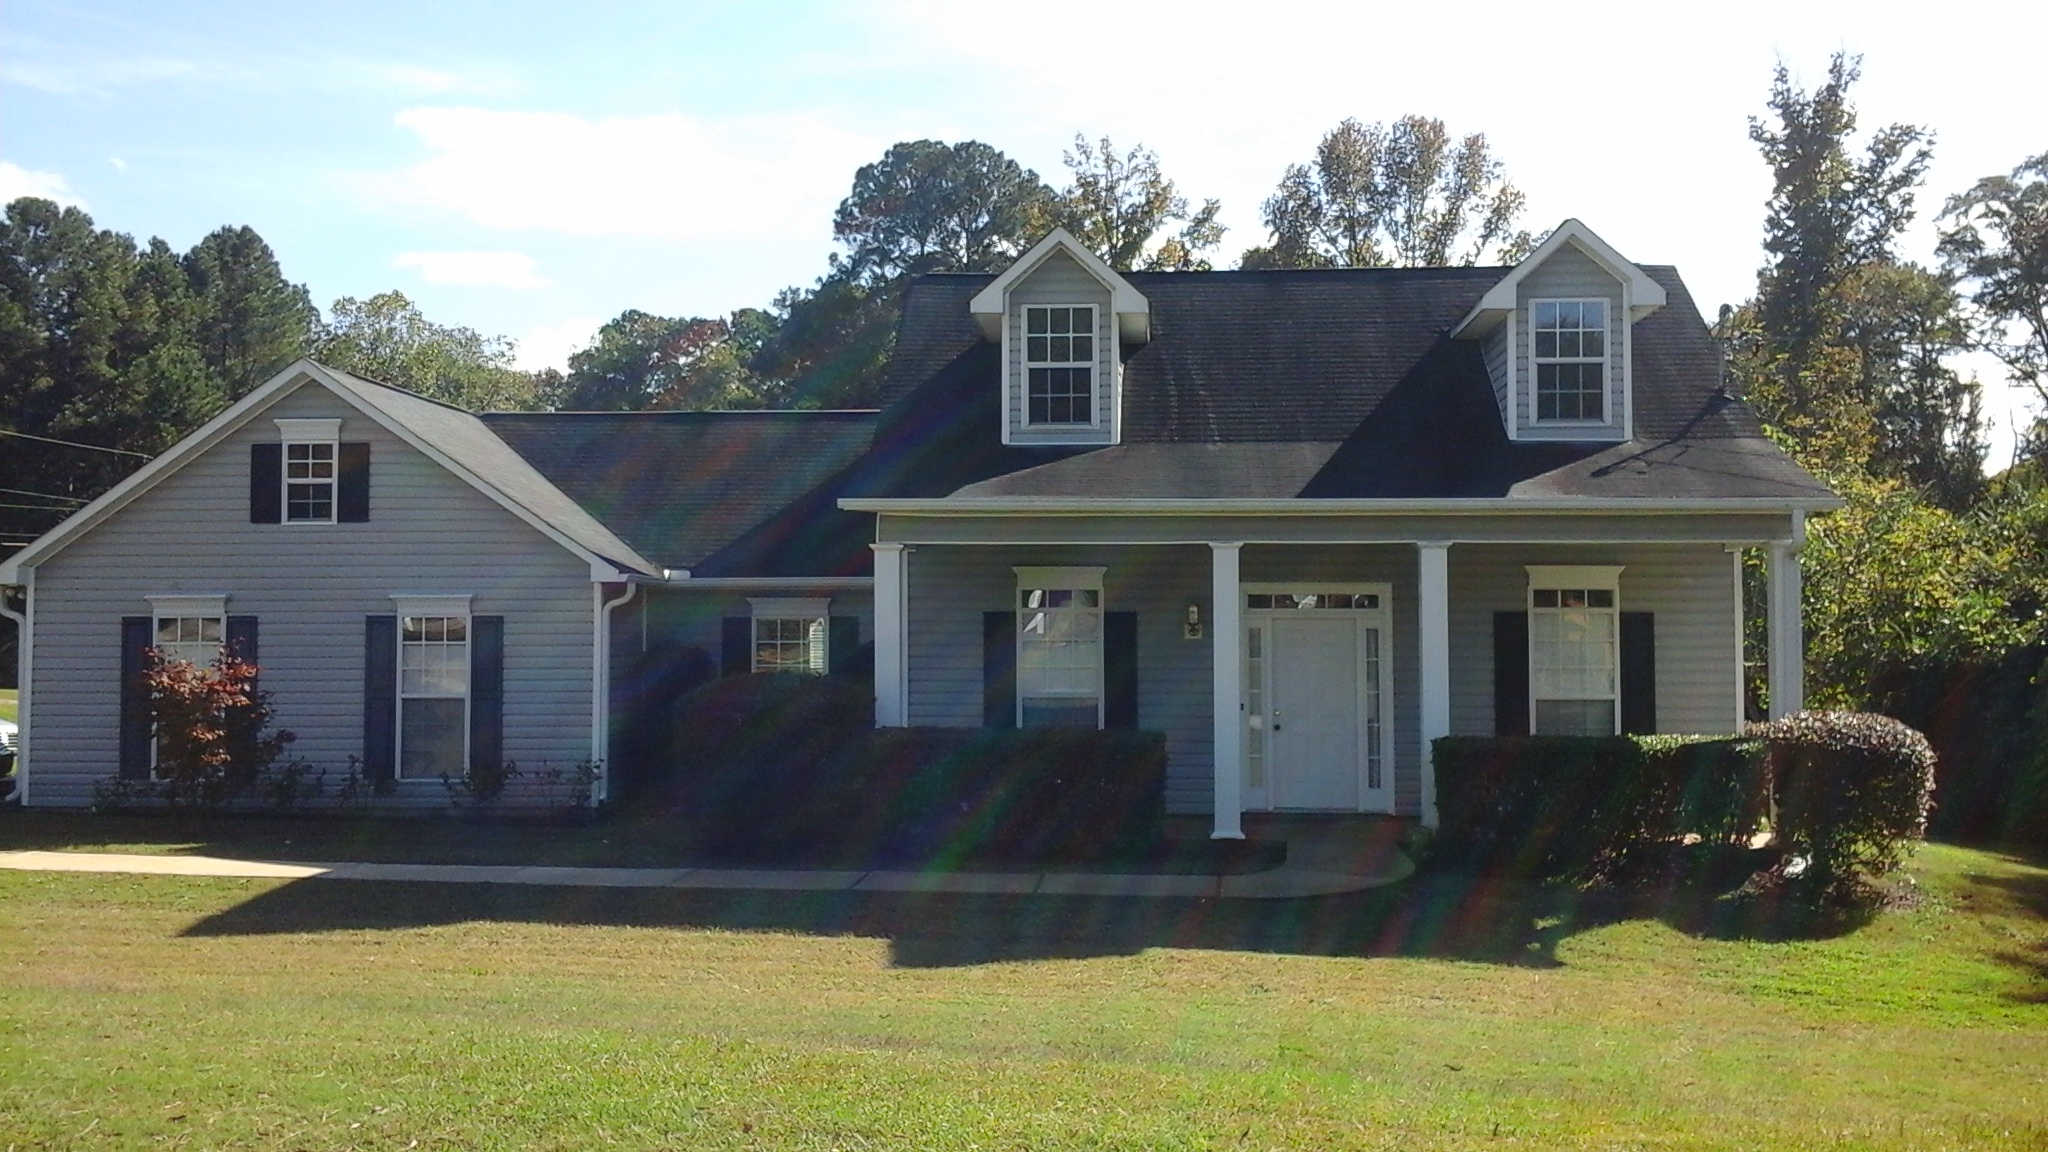 1801 3rd Court, Lanett, Alabama 36863